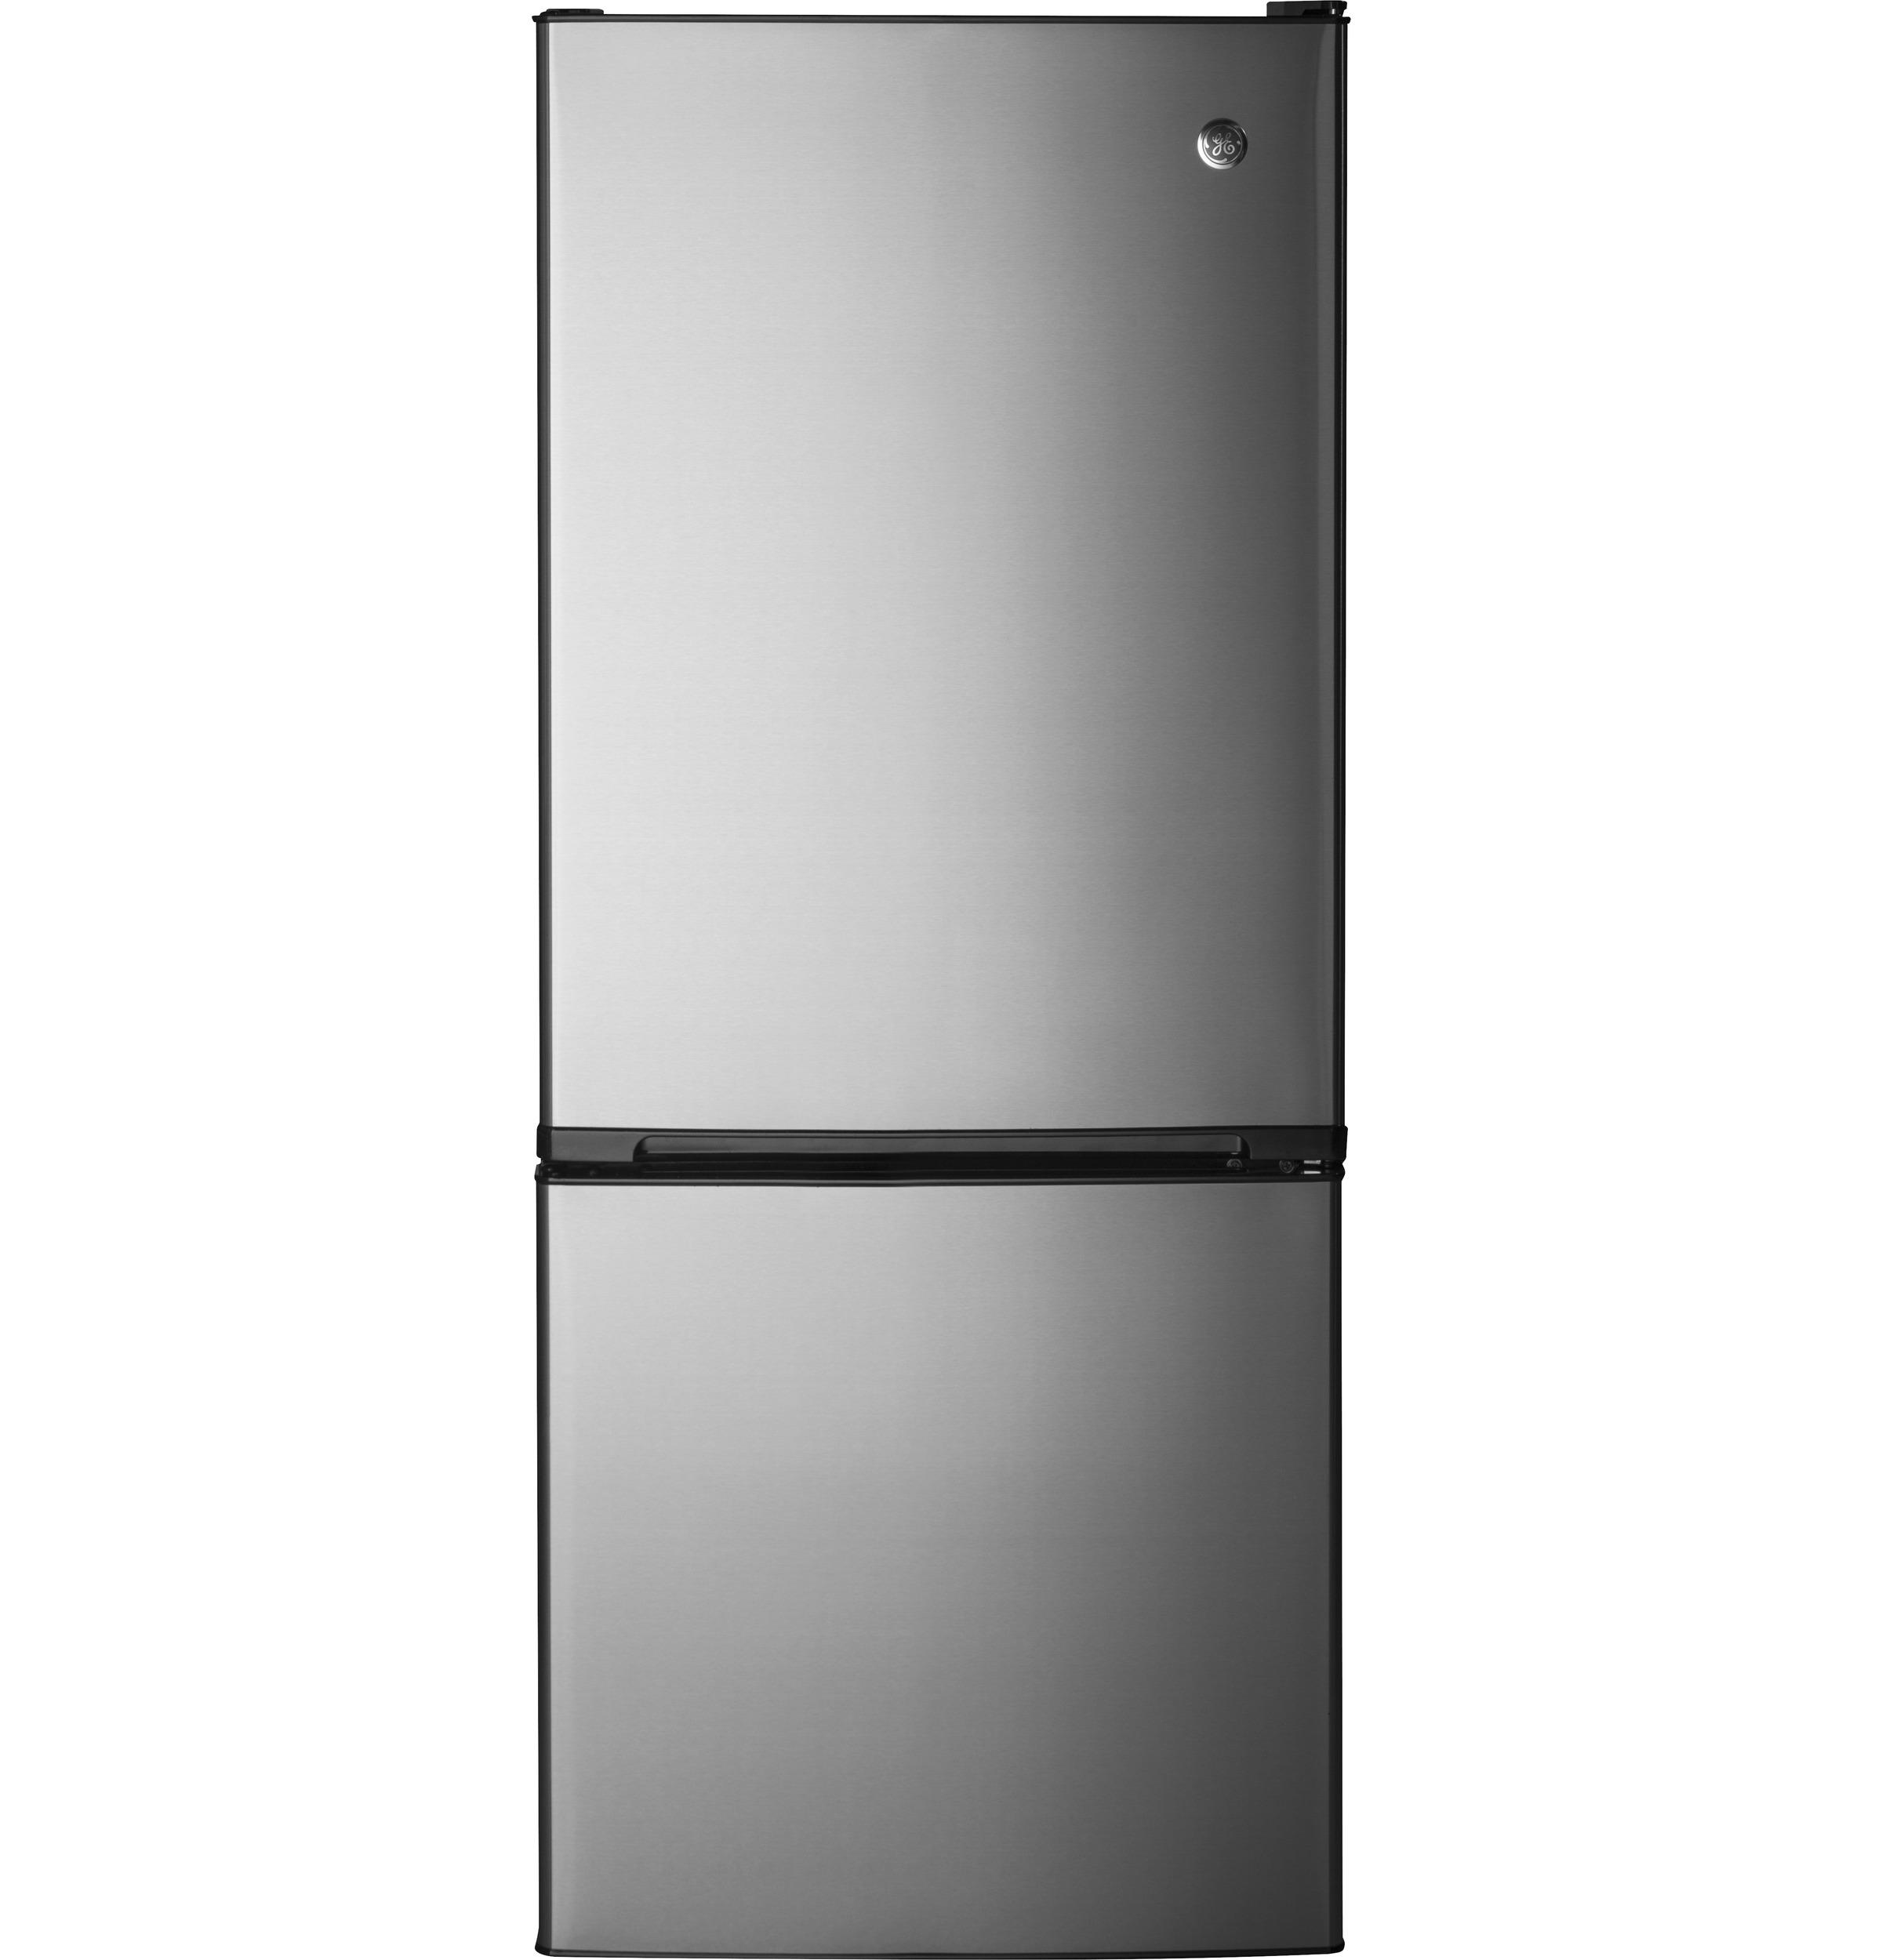 GE APPLIANCES GBE10ESJSB